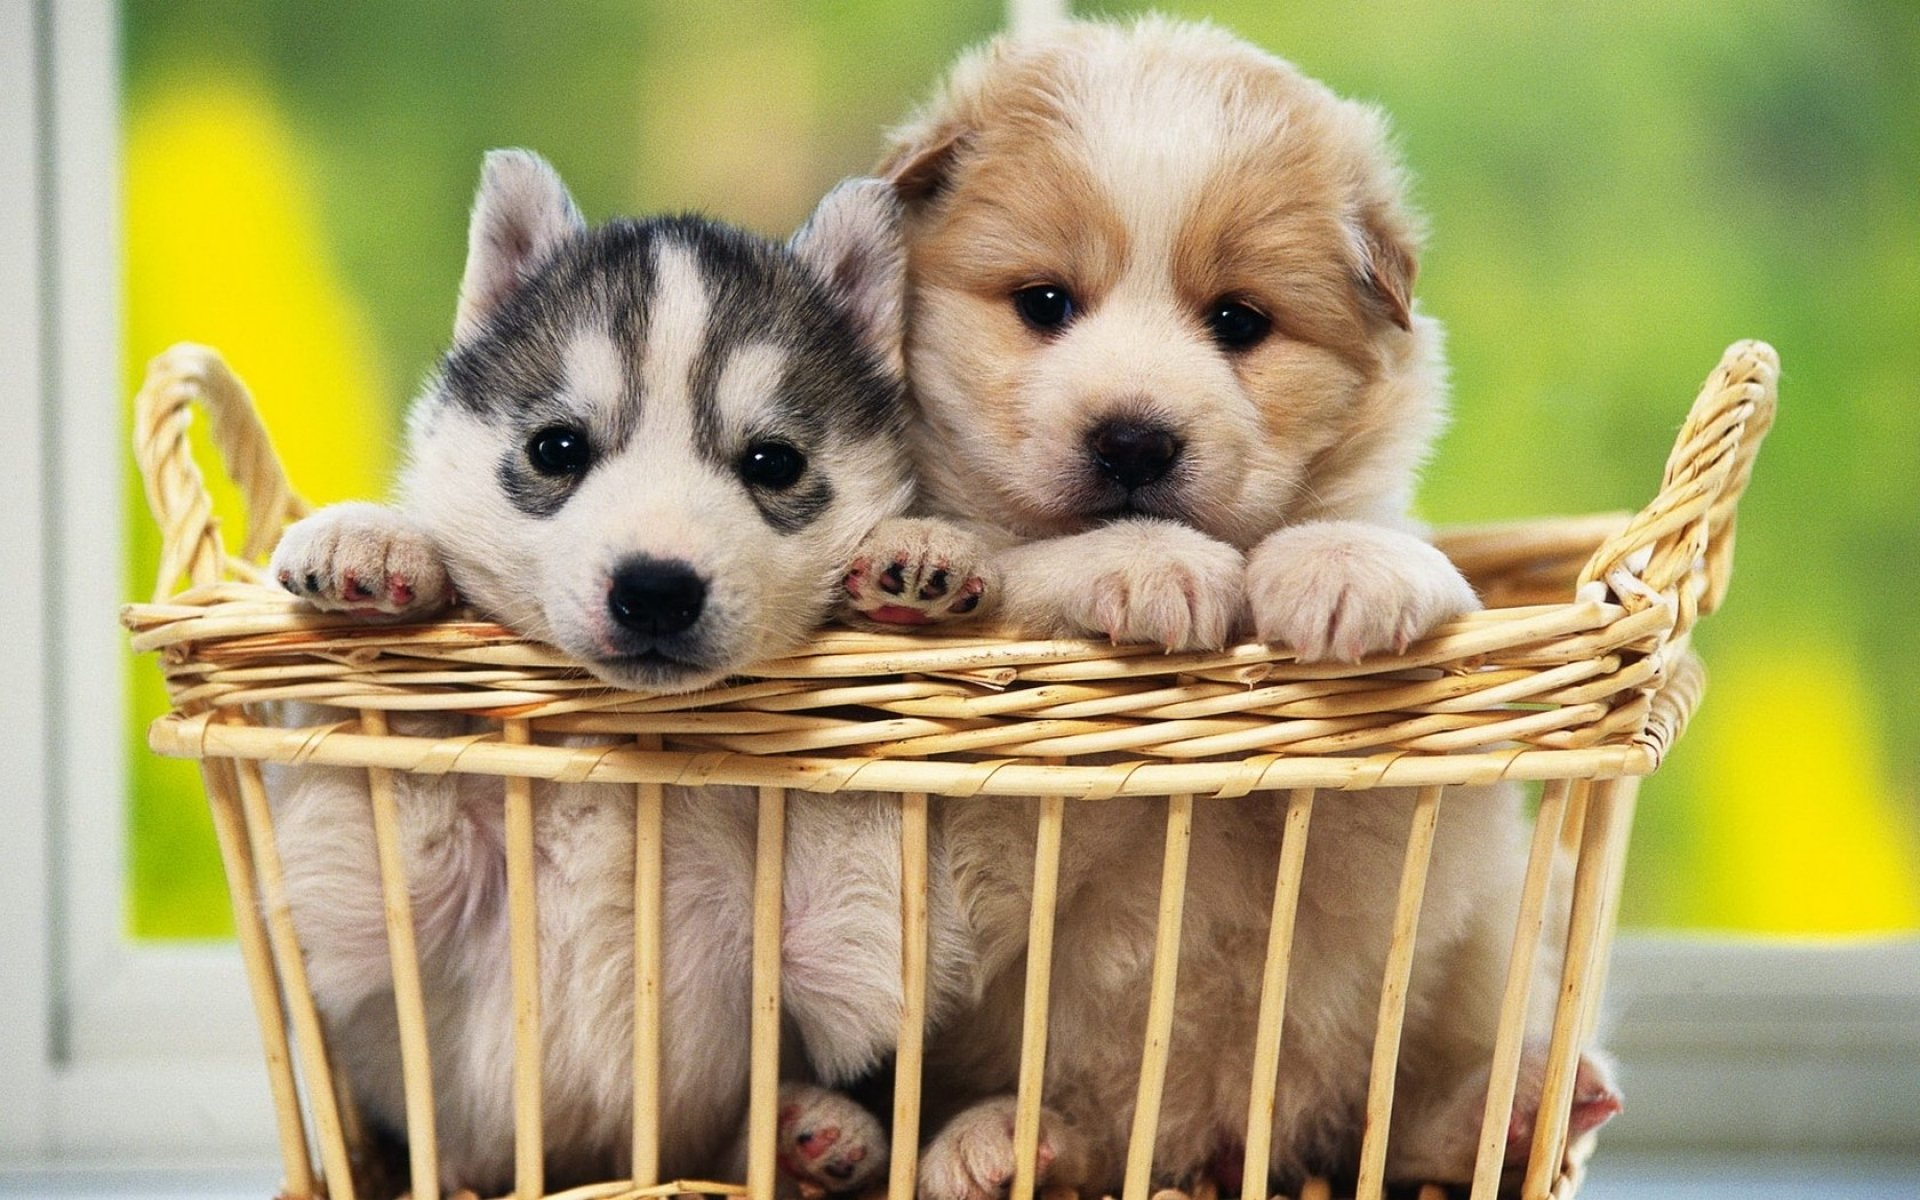 2650 Dog HD Wallpapers Background Images 1920x1200